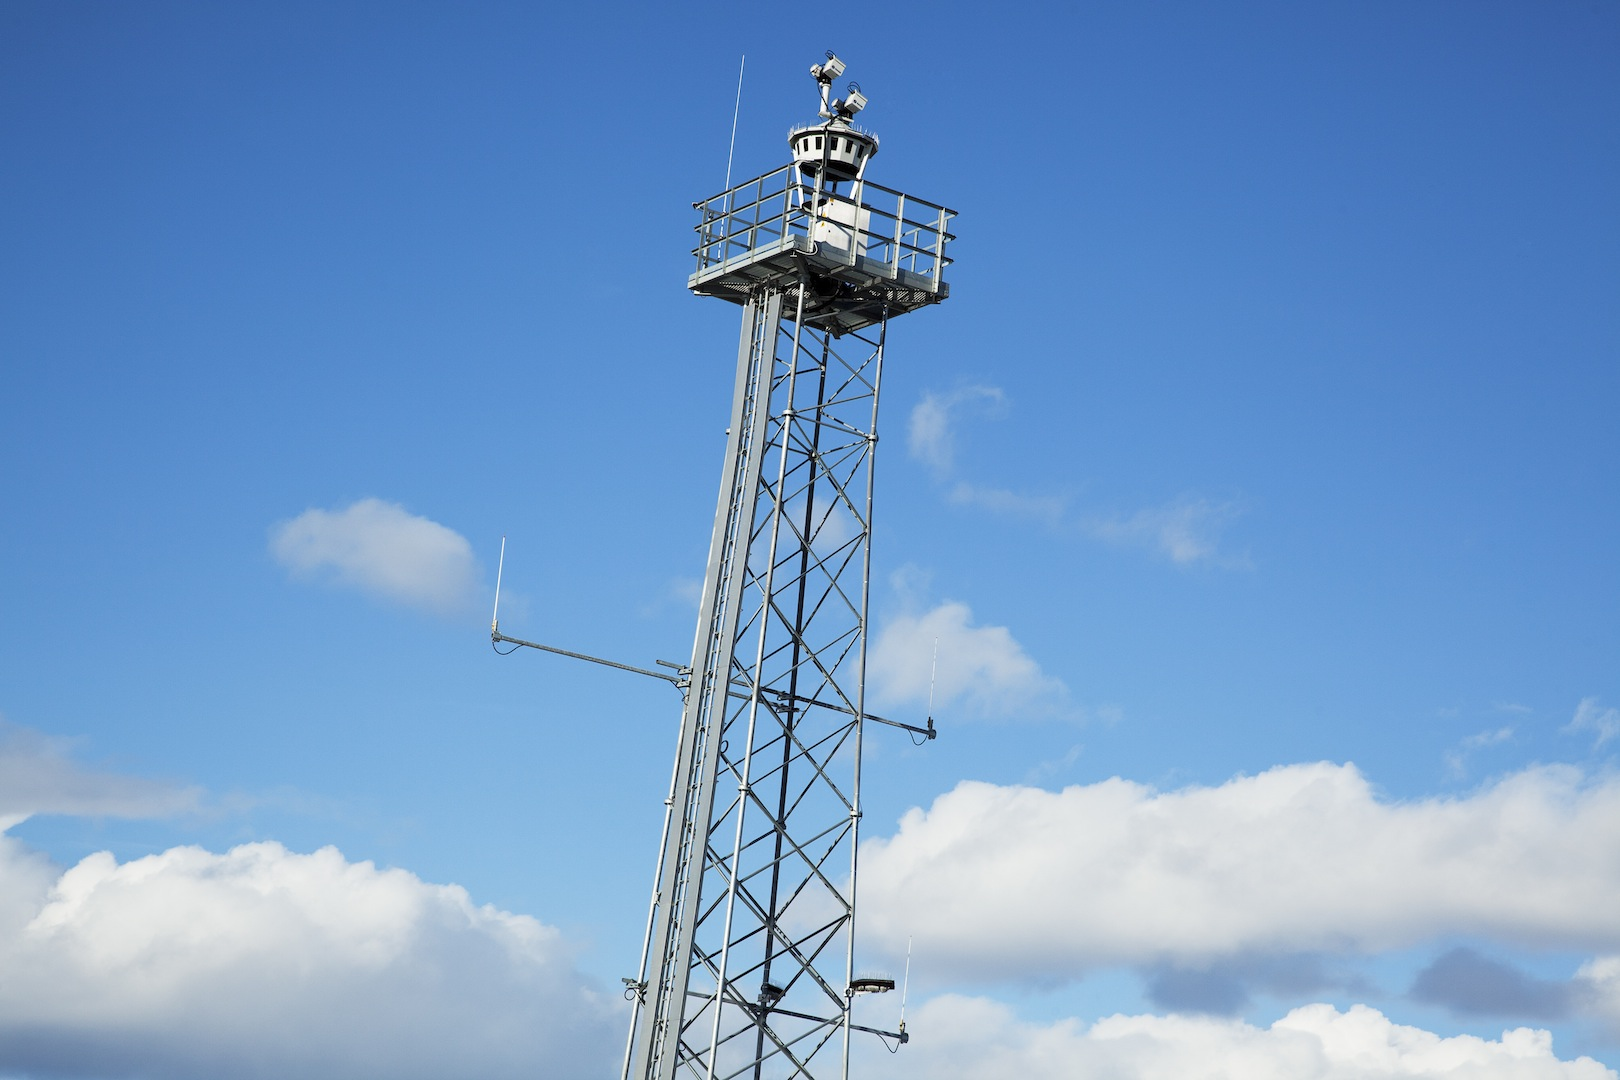 Sweden S Lfv Inaugurates First Remote Tower Operations